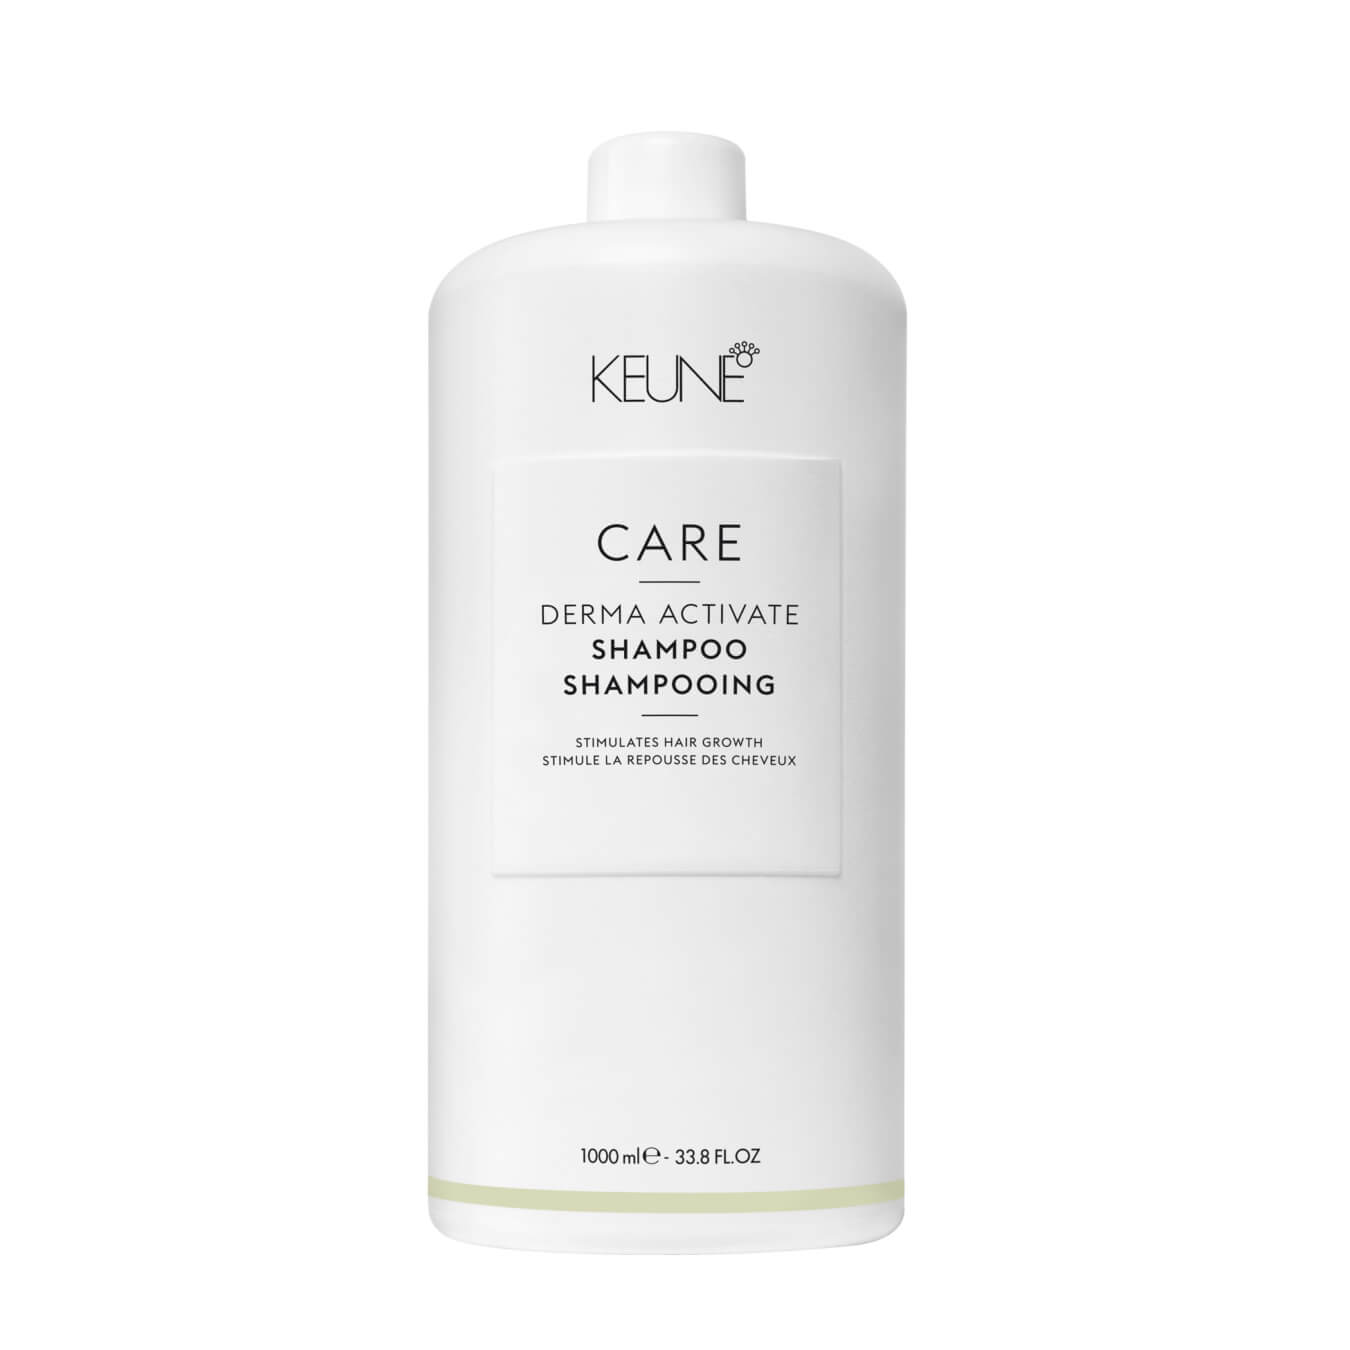 Koop Keune Care Derma Activate Shampoo 1000ml